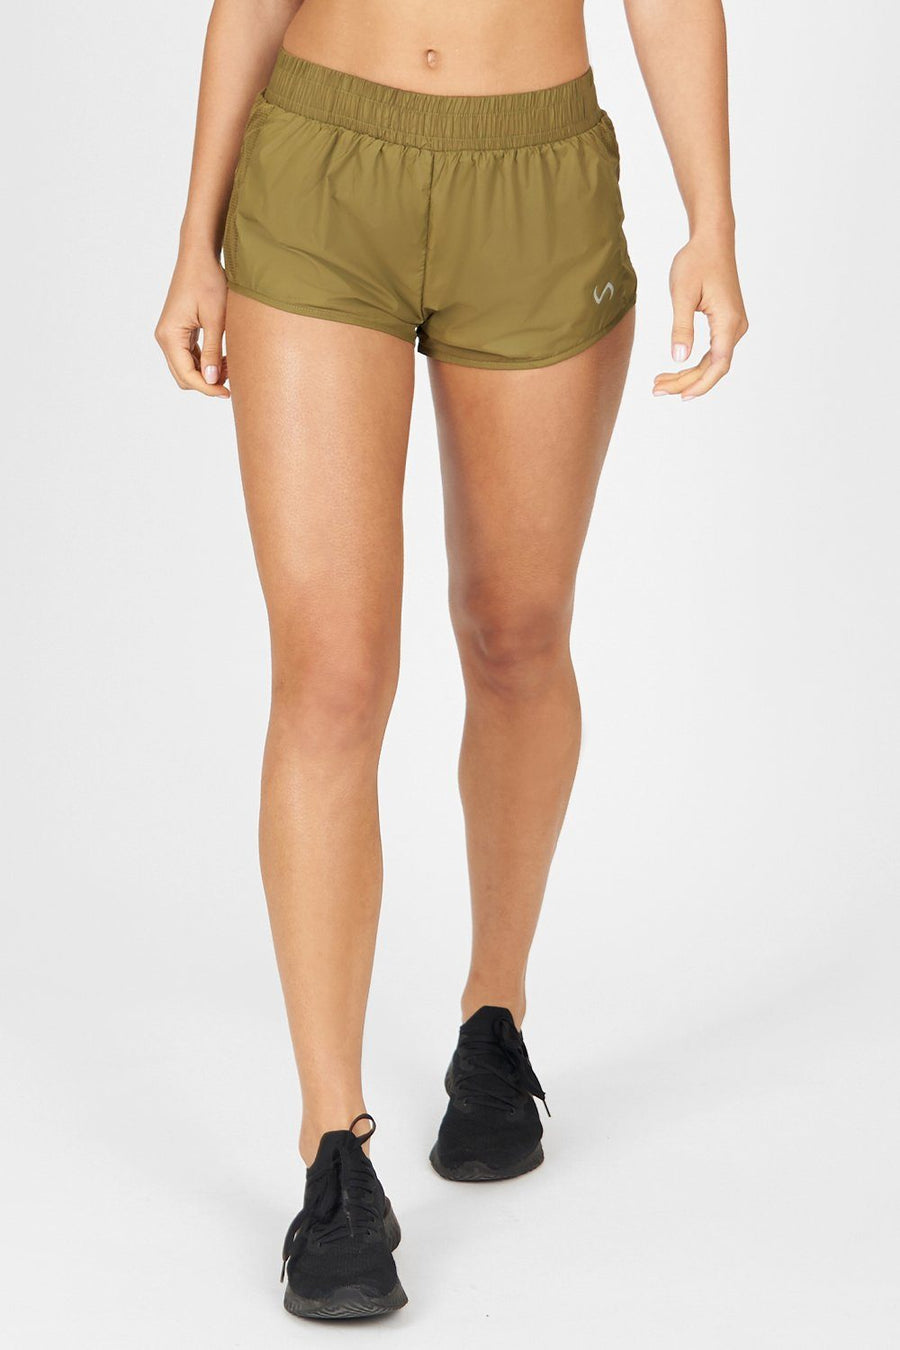 TLF Train-N-Run™ Pace Shorts - Lizard